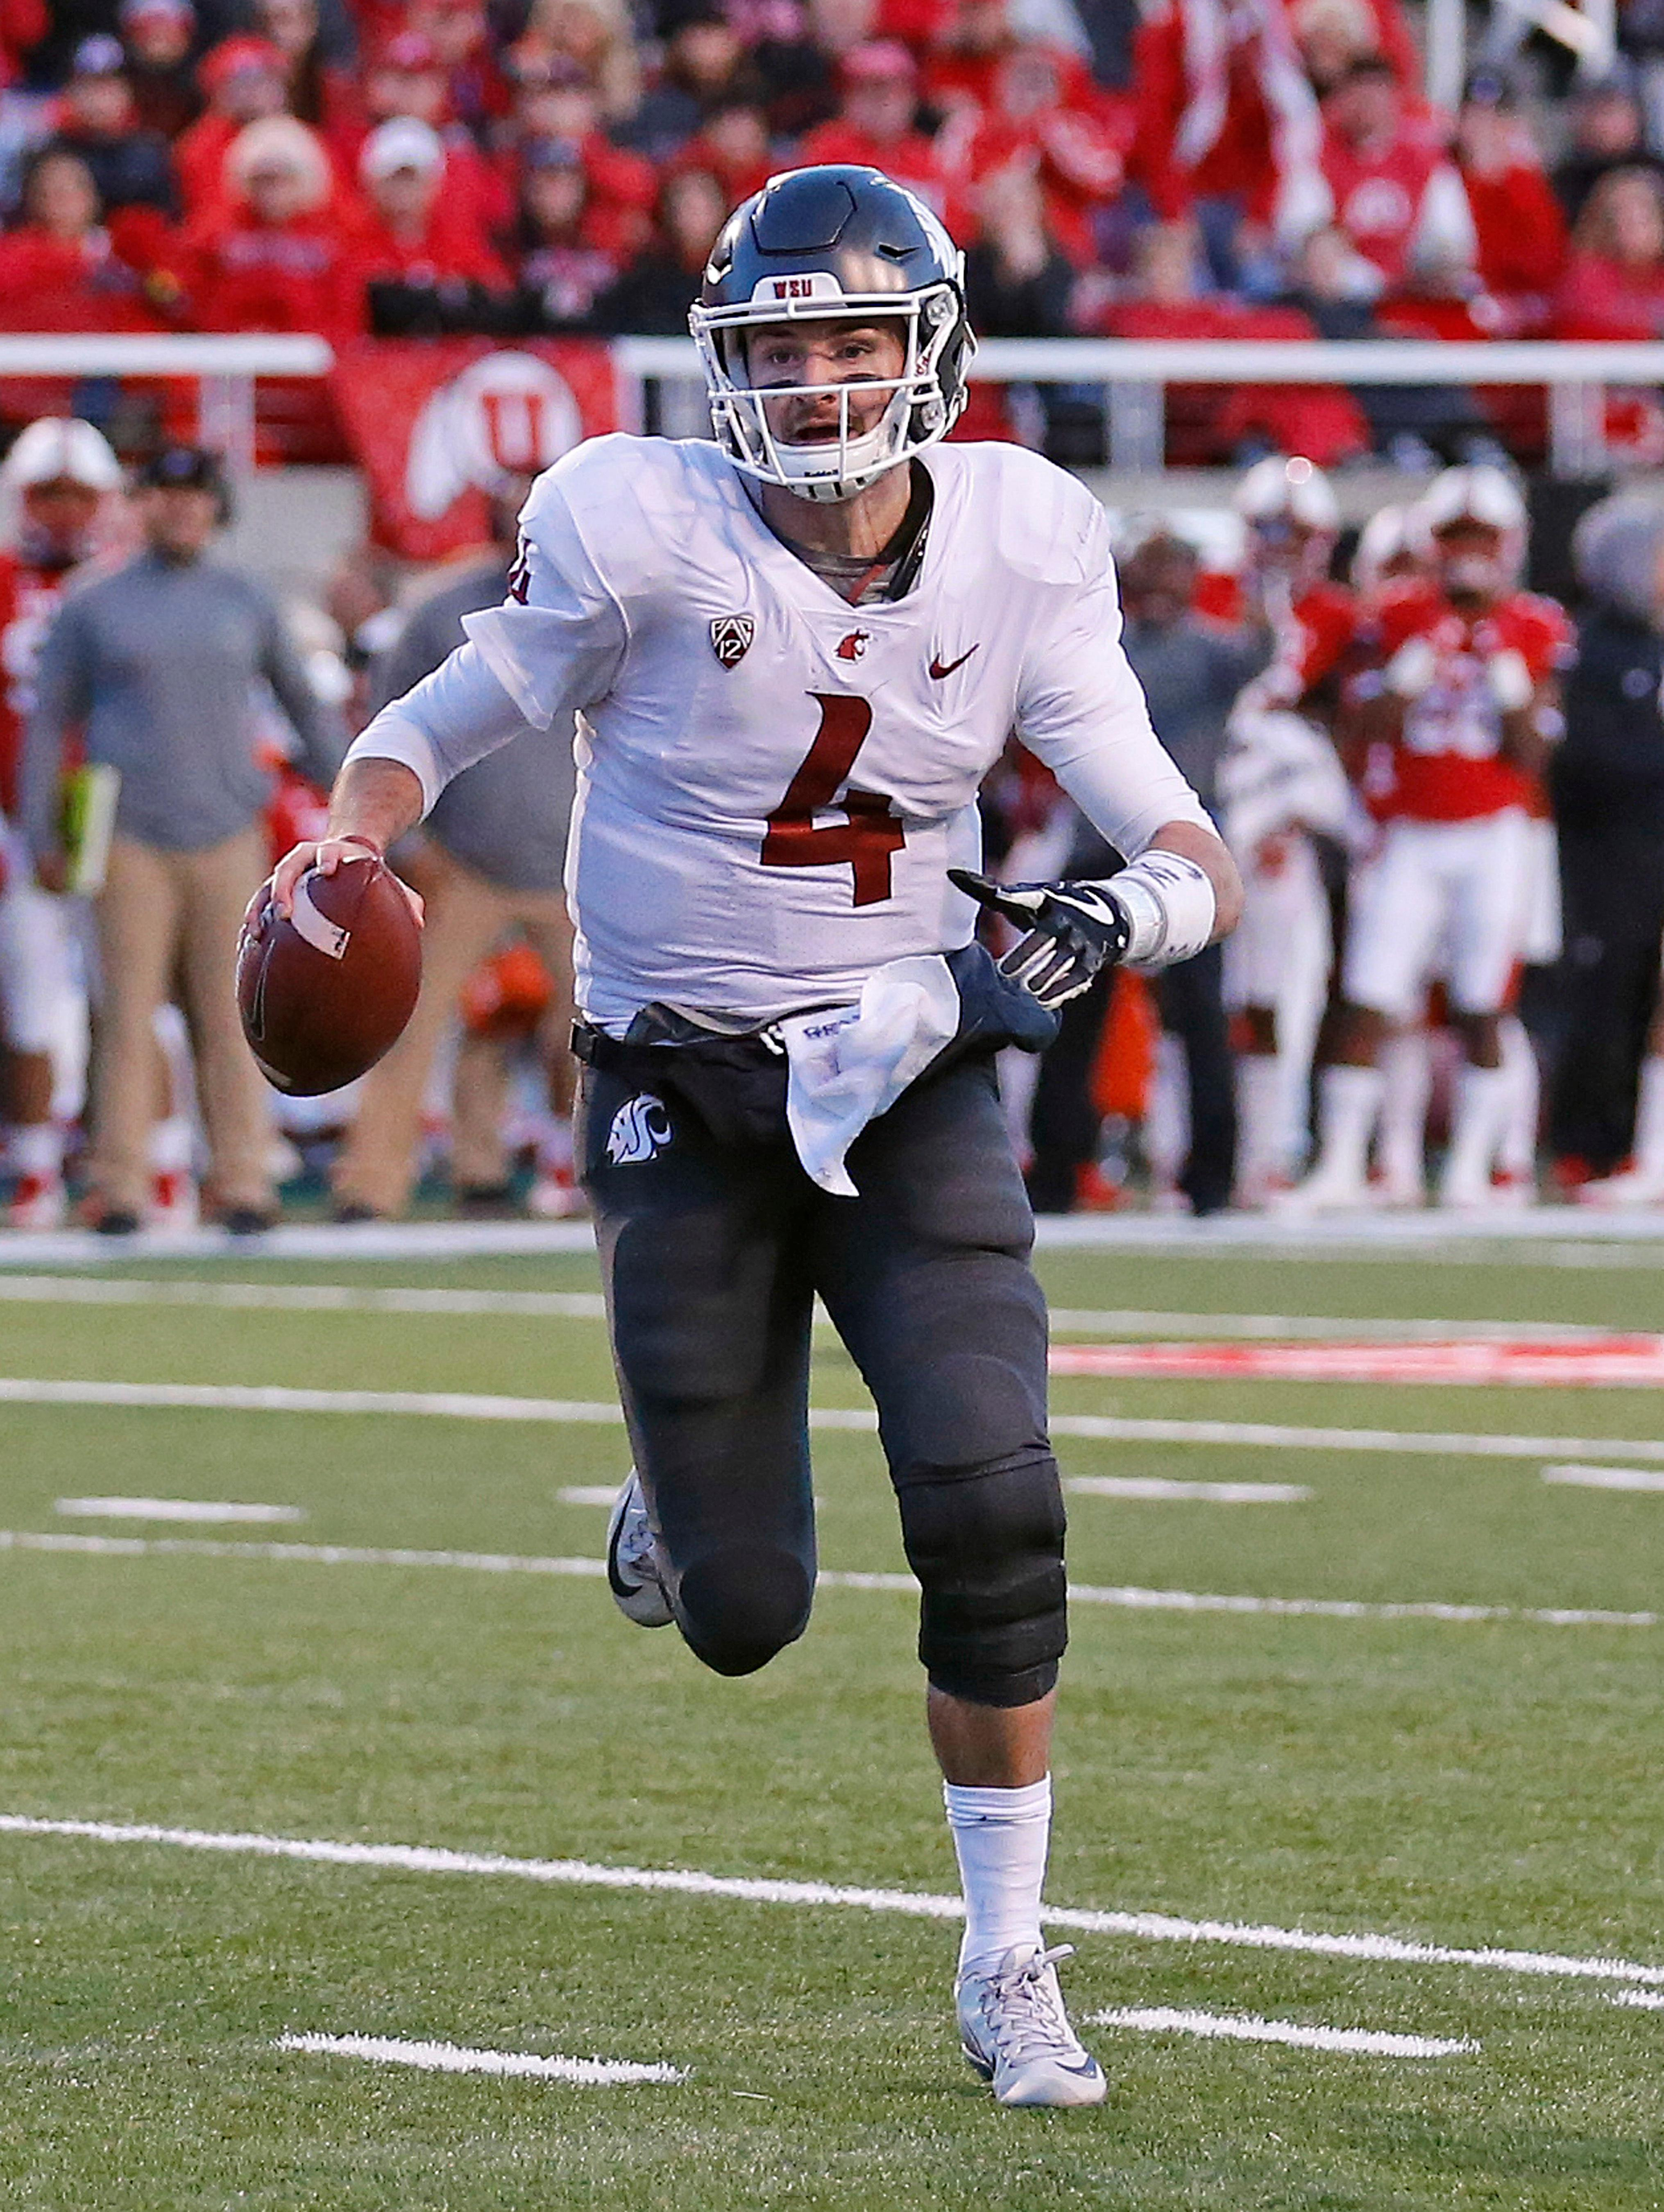 Washington State quarterback Luke Falk (4) carries the ball against Utah in the first half of an NCAA college football game, Saturday, Nov. 11, 2017, in Salt Lake City. (AP Photo/Rick Bowmer)